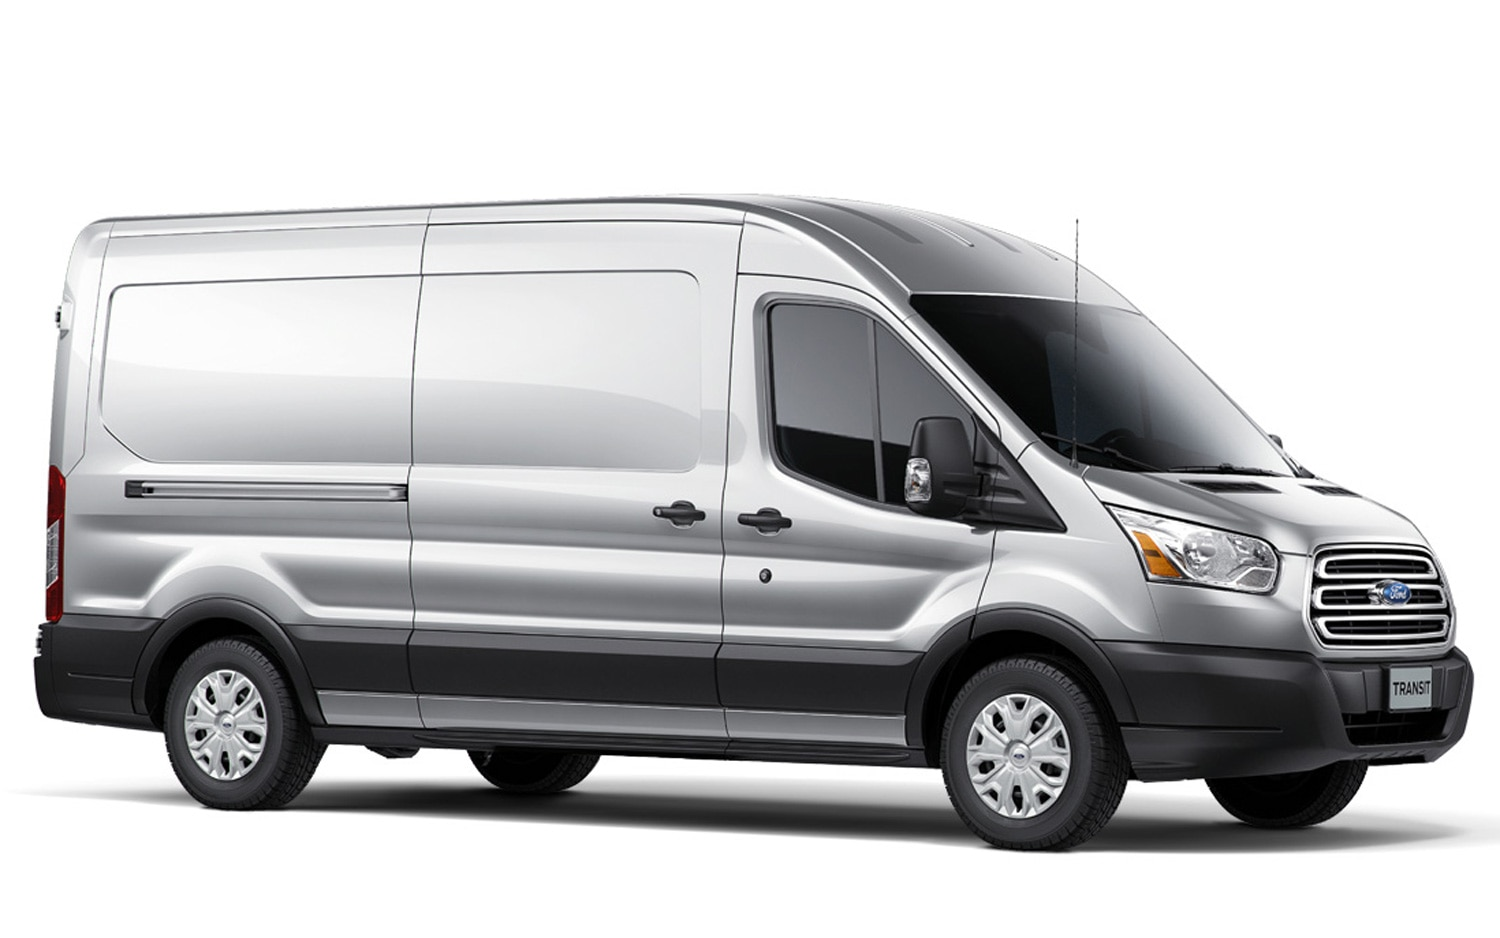 2014 Ford Transit Front Three Quarters View1